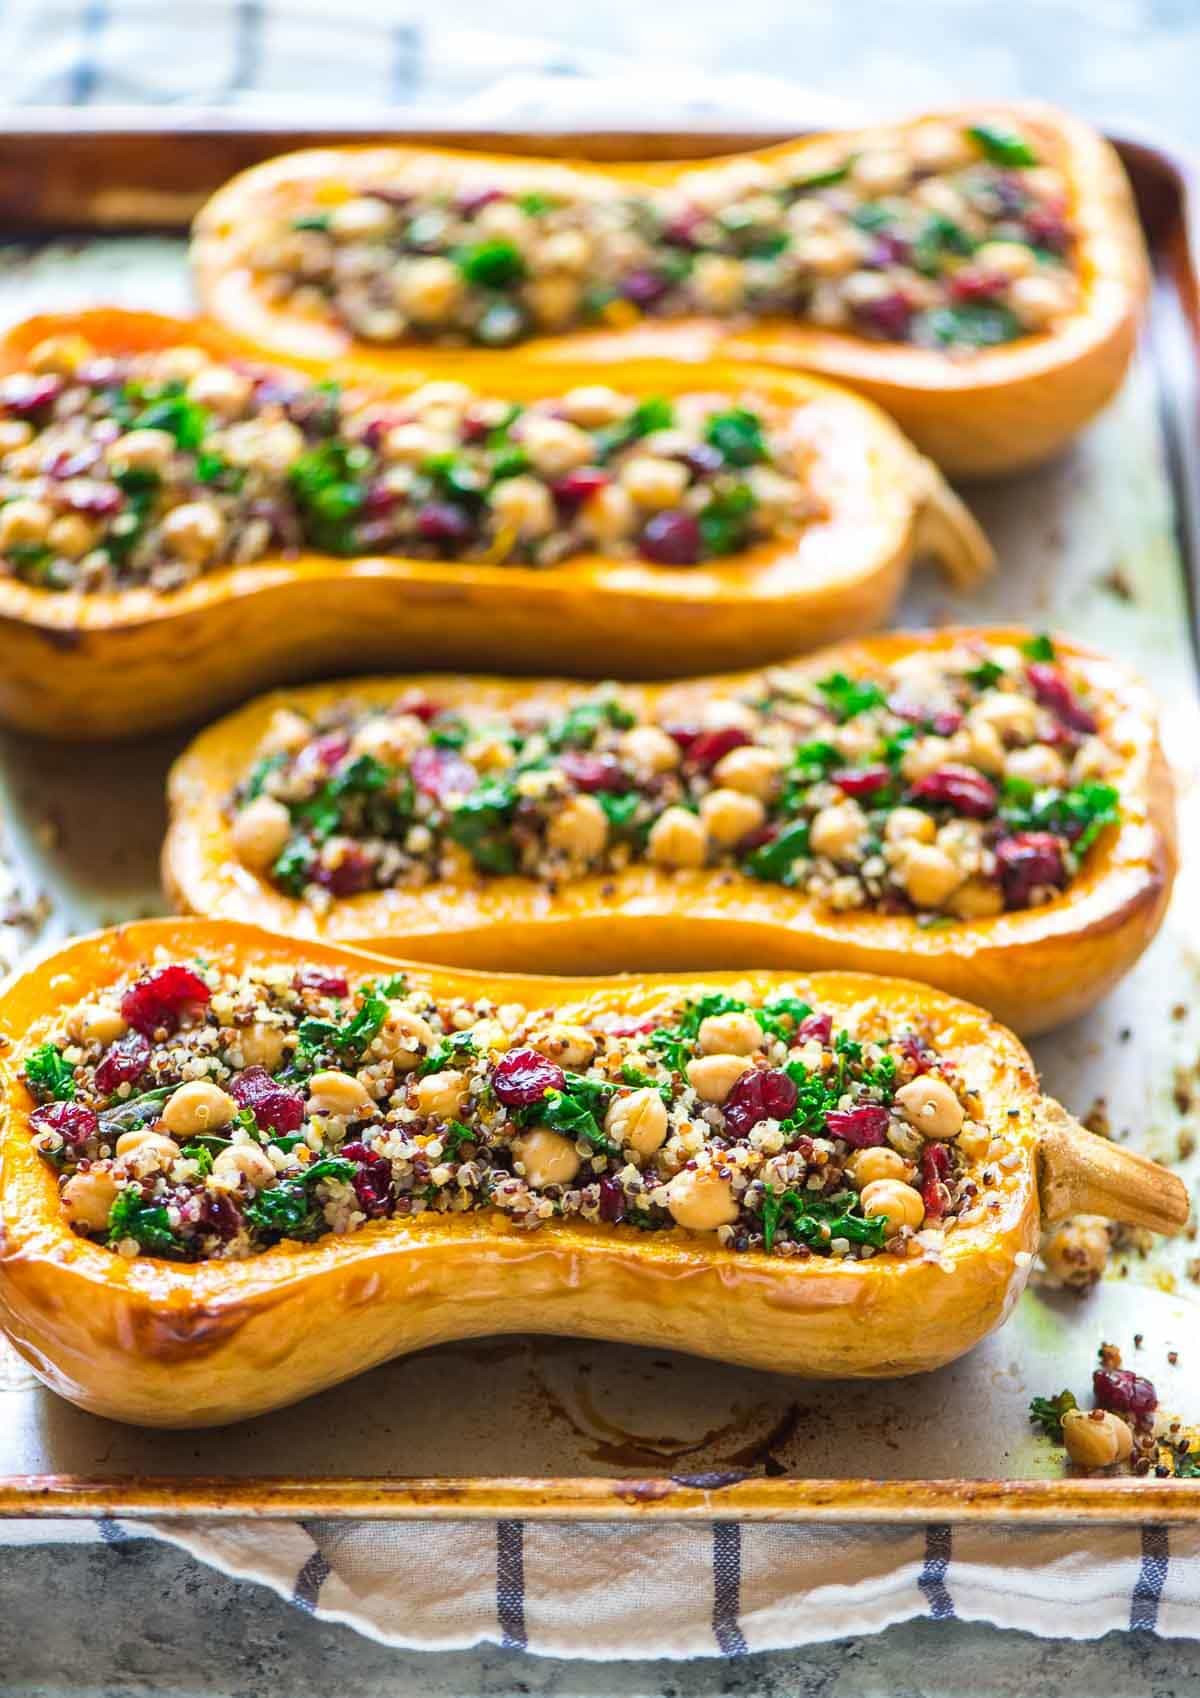 Easy Fall Dinner Recipe  Quinoa Stuffed Butternut Squash with Cranberries and Kale